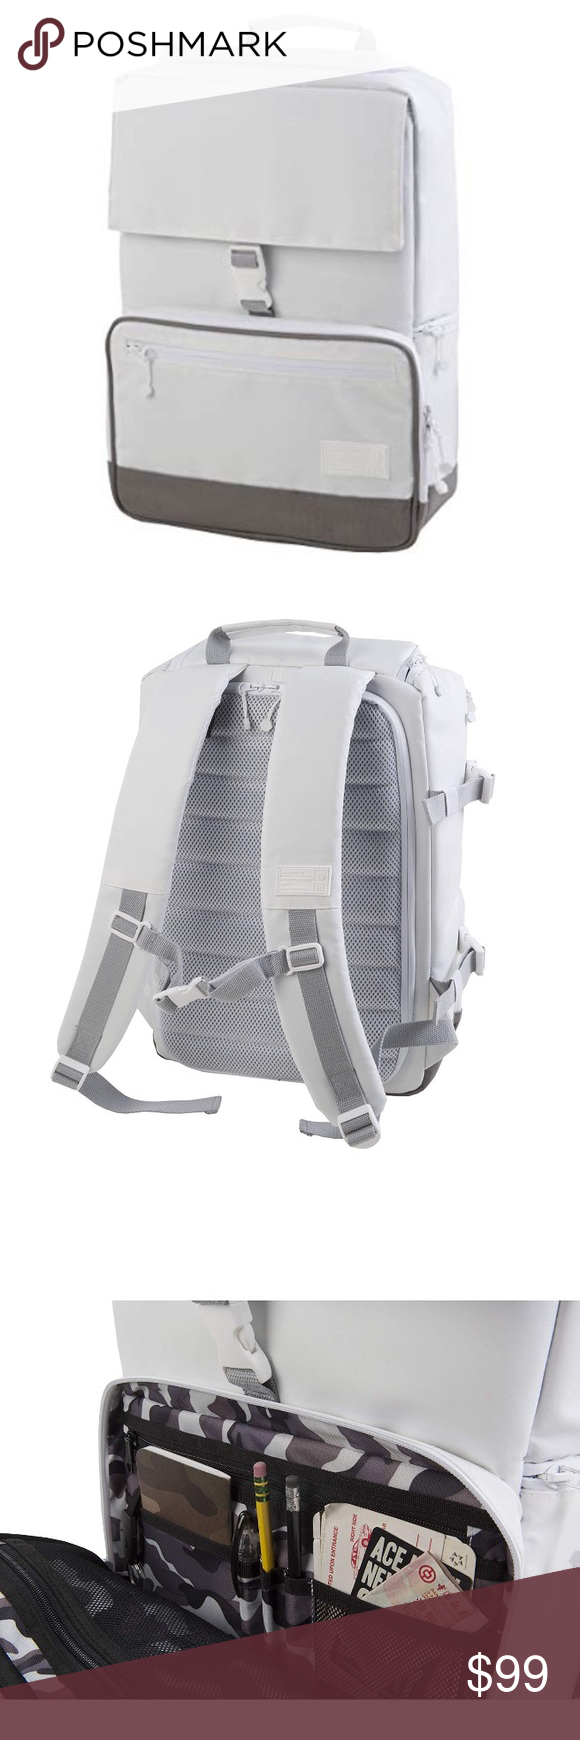 9d75bbe8a428 HEX RAVEN MEDIUM DSLR BACKPACK white NWT